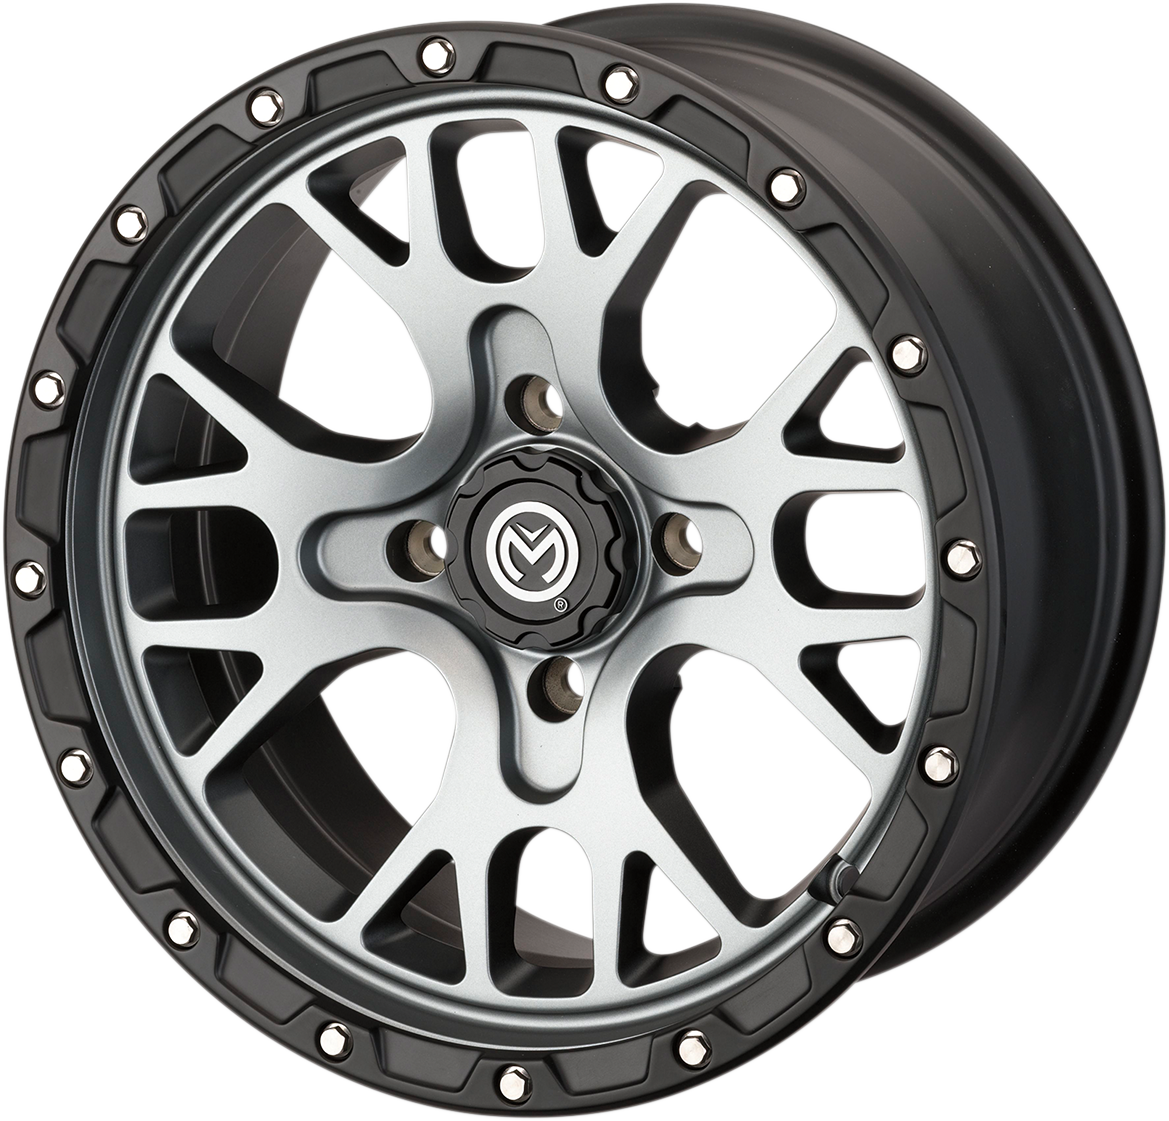 Moose 15x7 4/156 4+3 545X Satin Gray & Black Rocker vannesarja Polaris